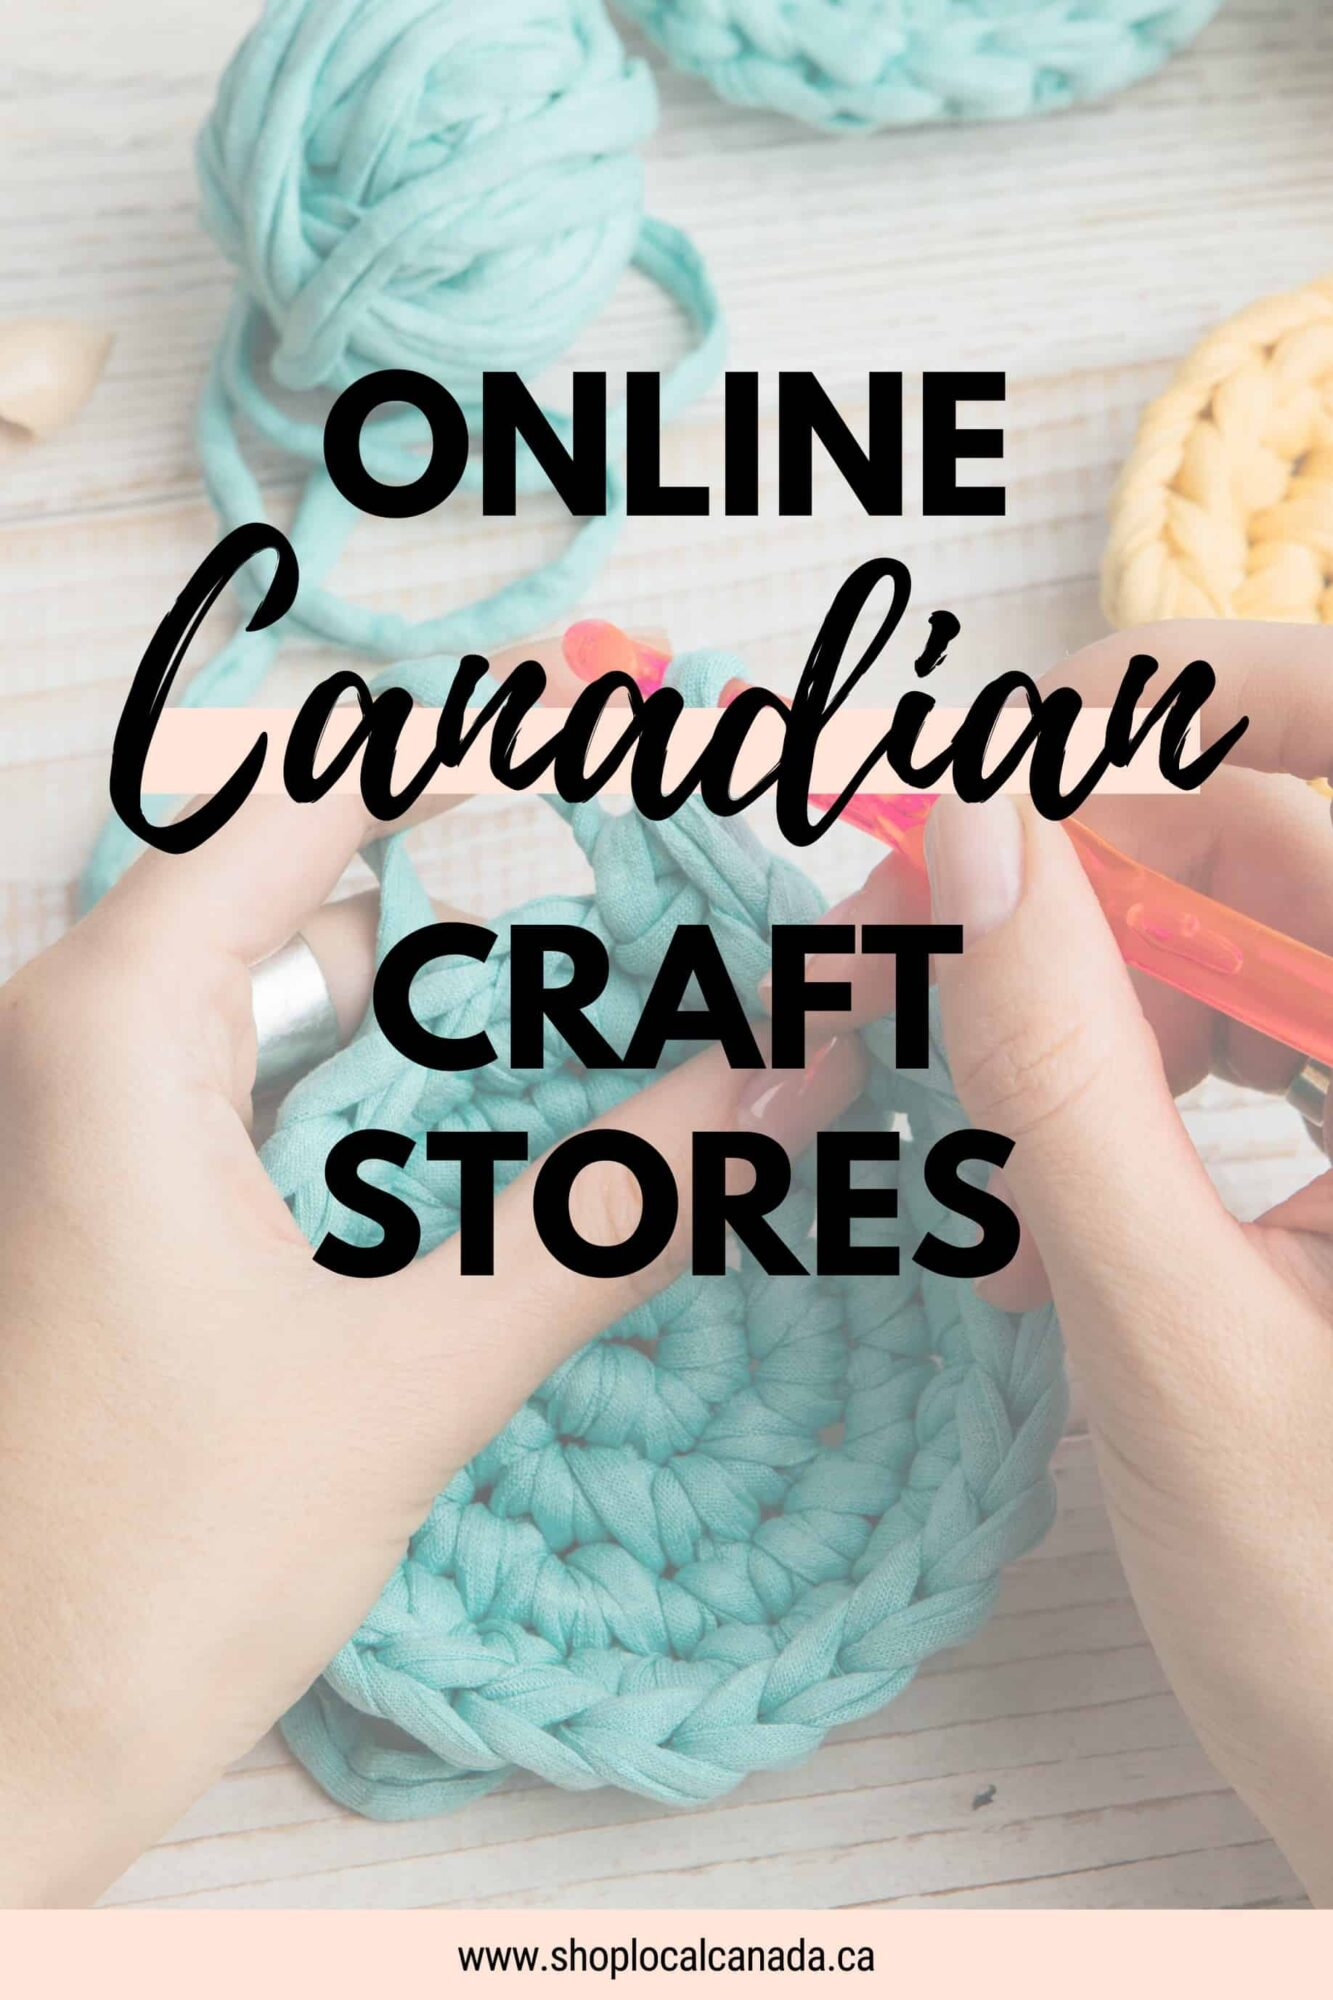 Online Canadian Craft Stores